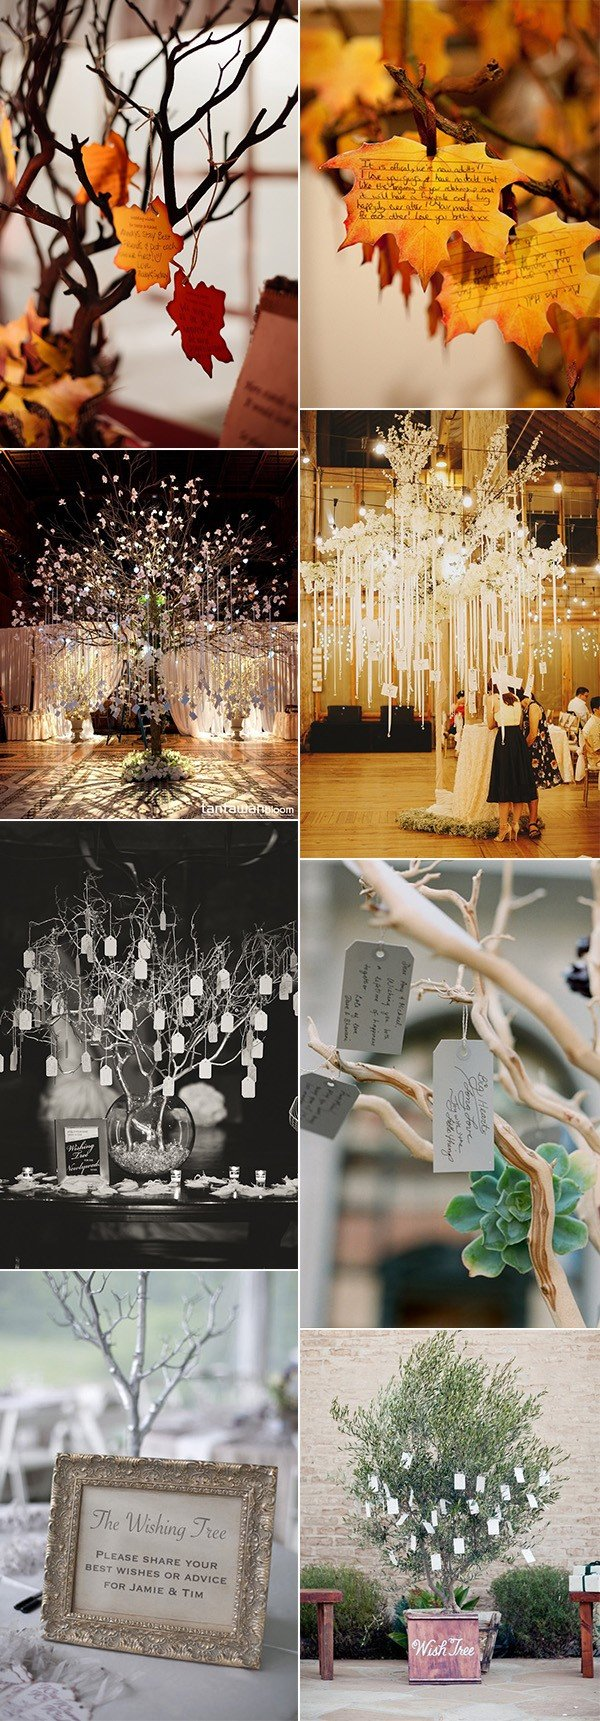 creative wedding wishing tree ideas for 2018